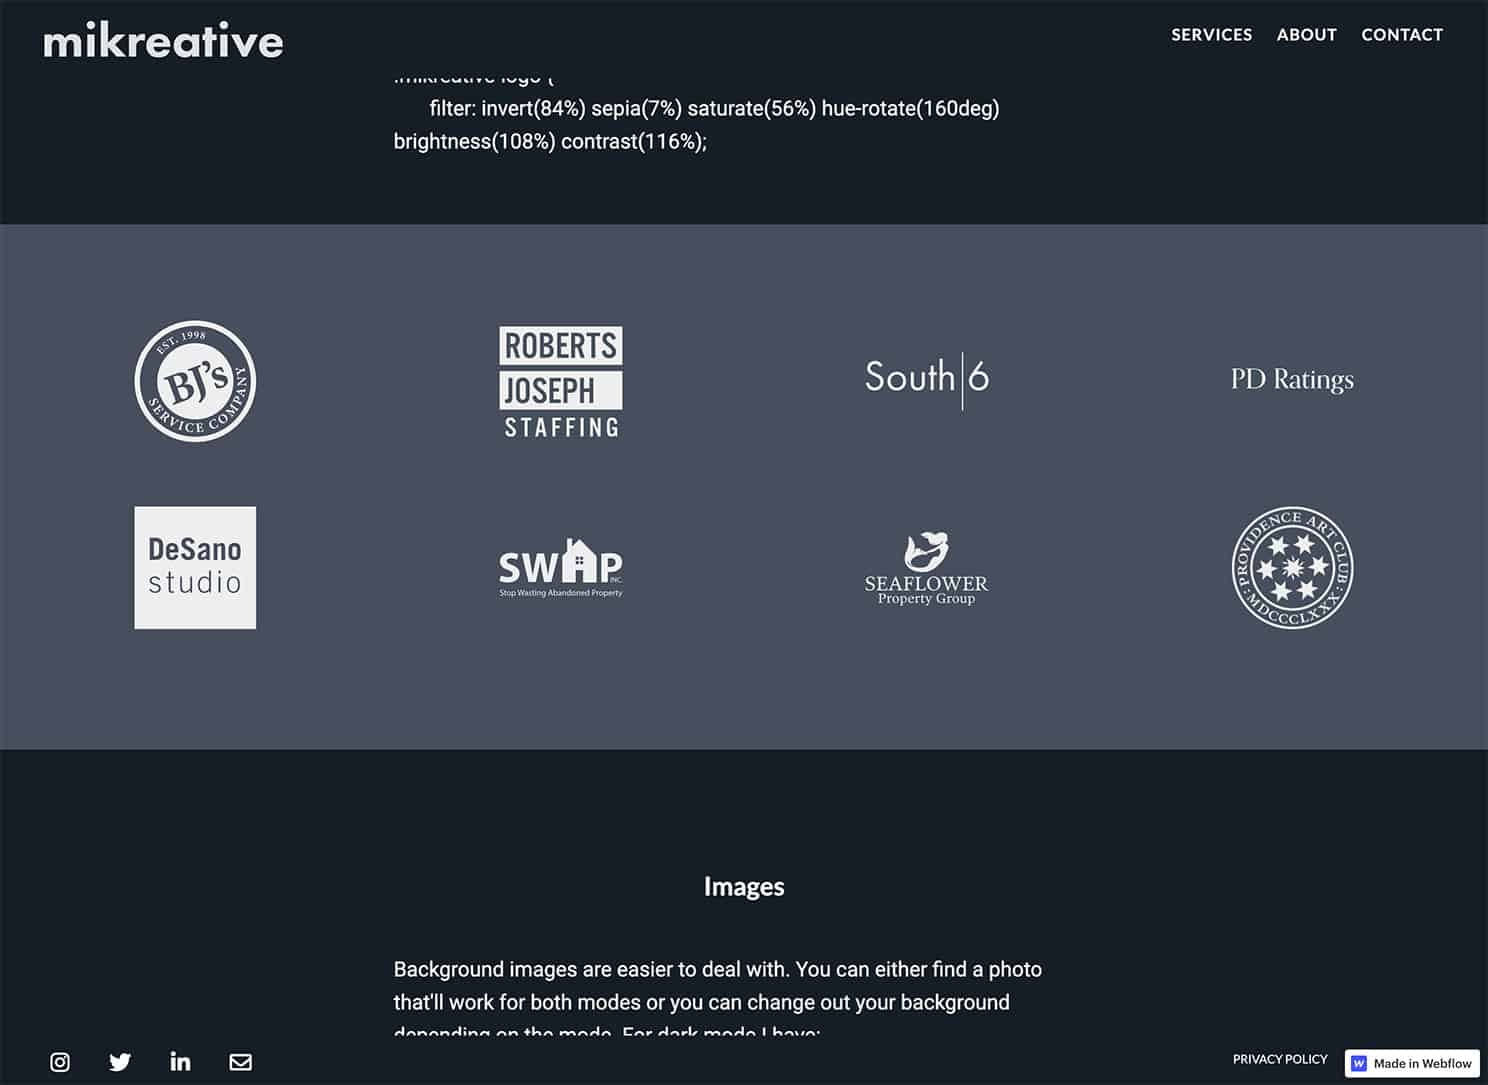 Client logo section of the homepage showing whith logos on a dark blue/grey background.